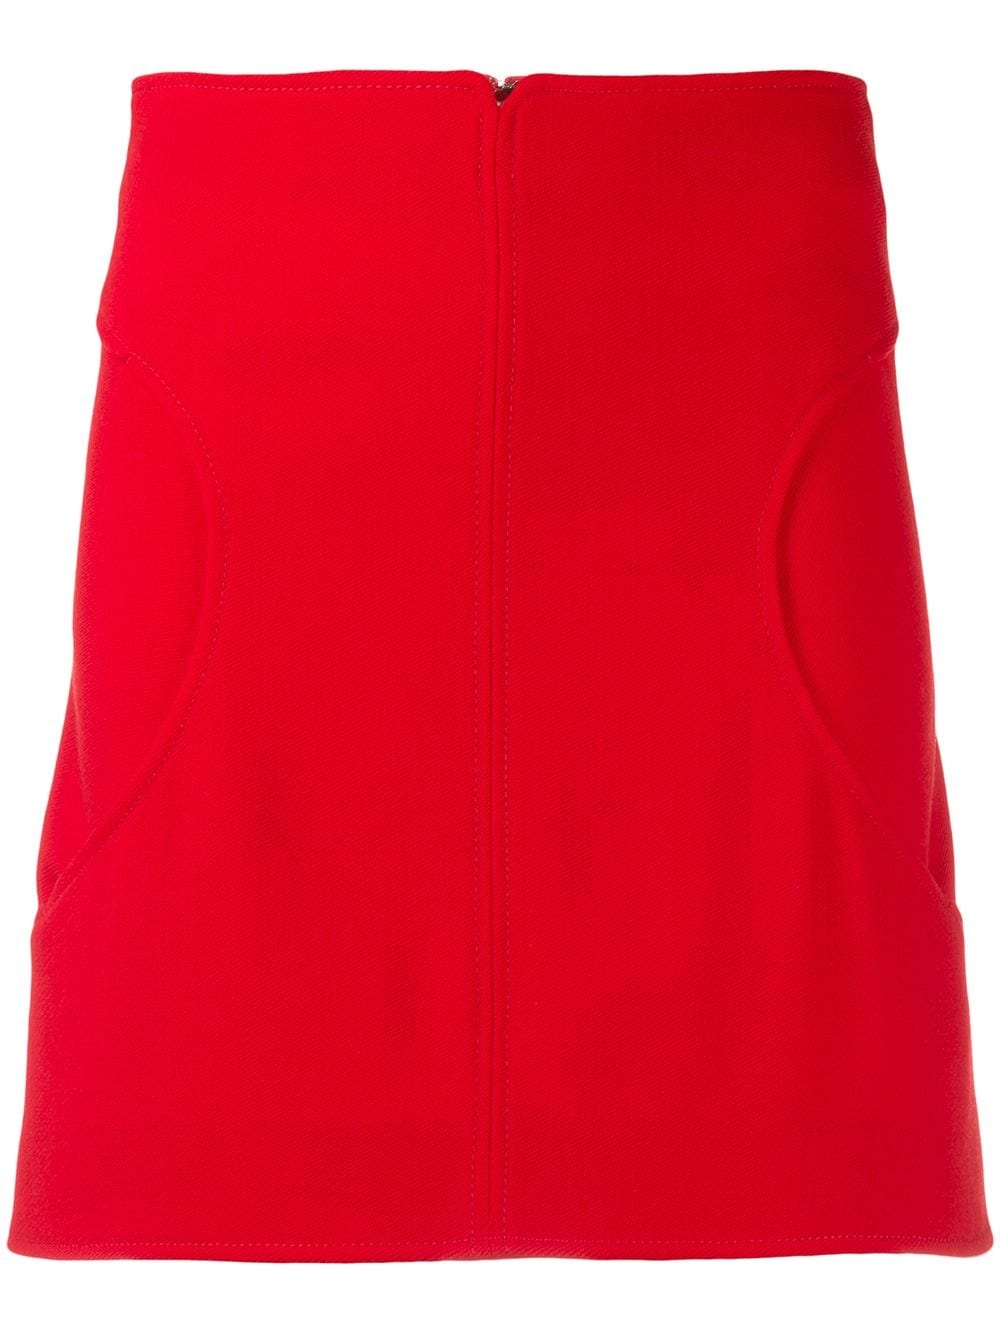 319J131024 674 RED